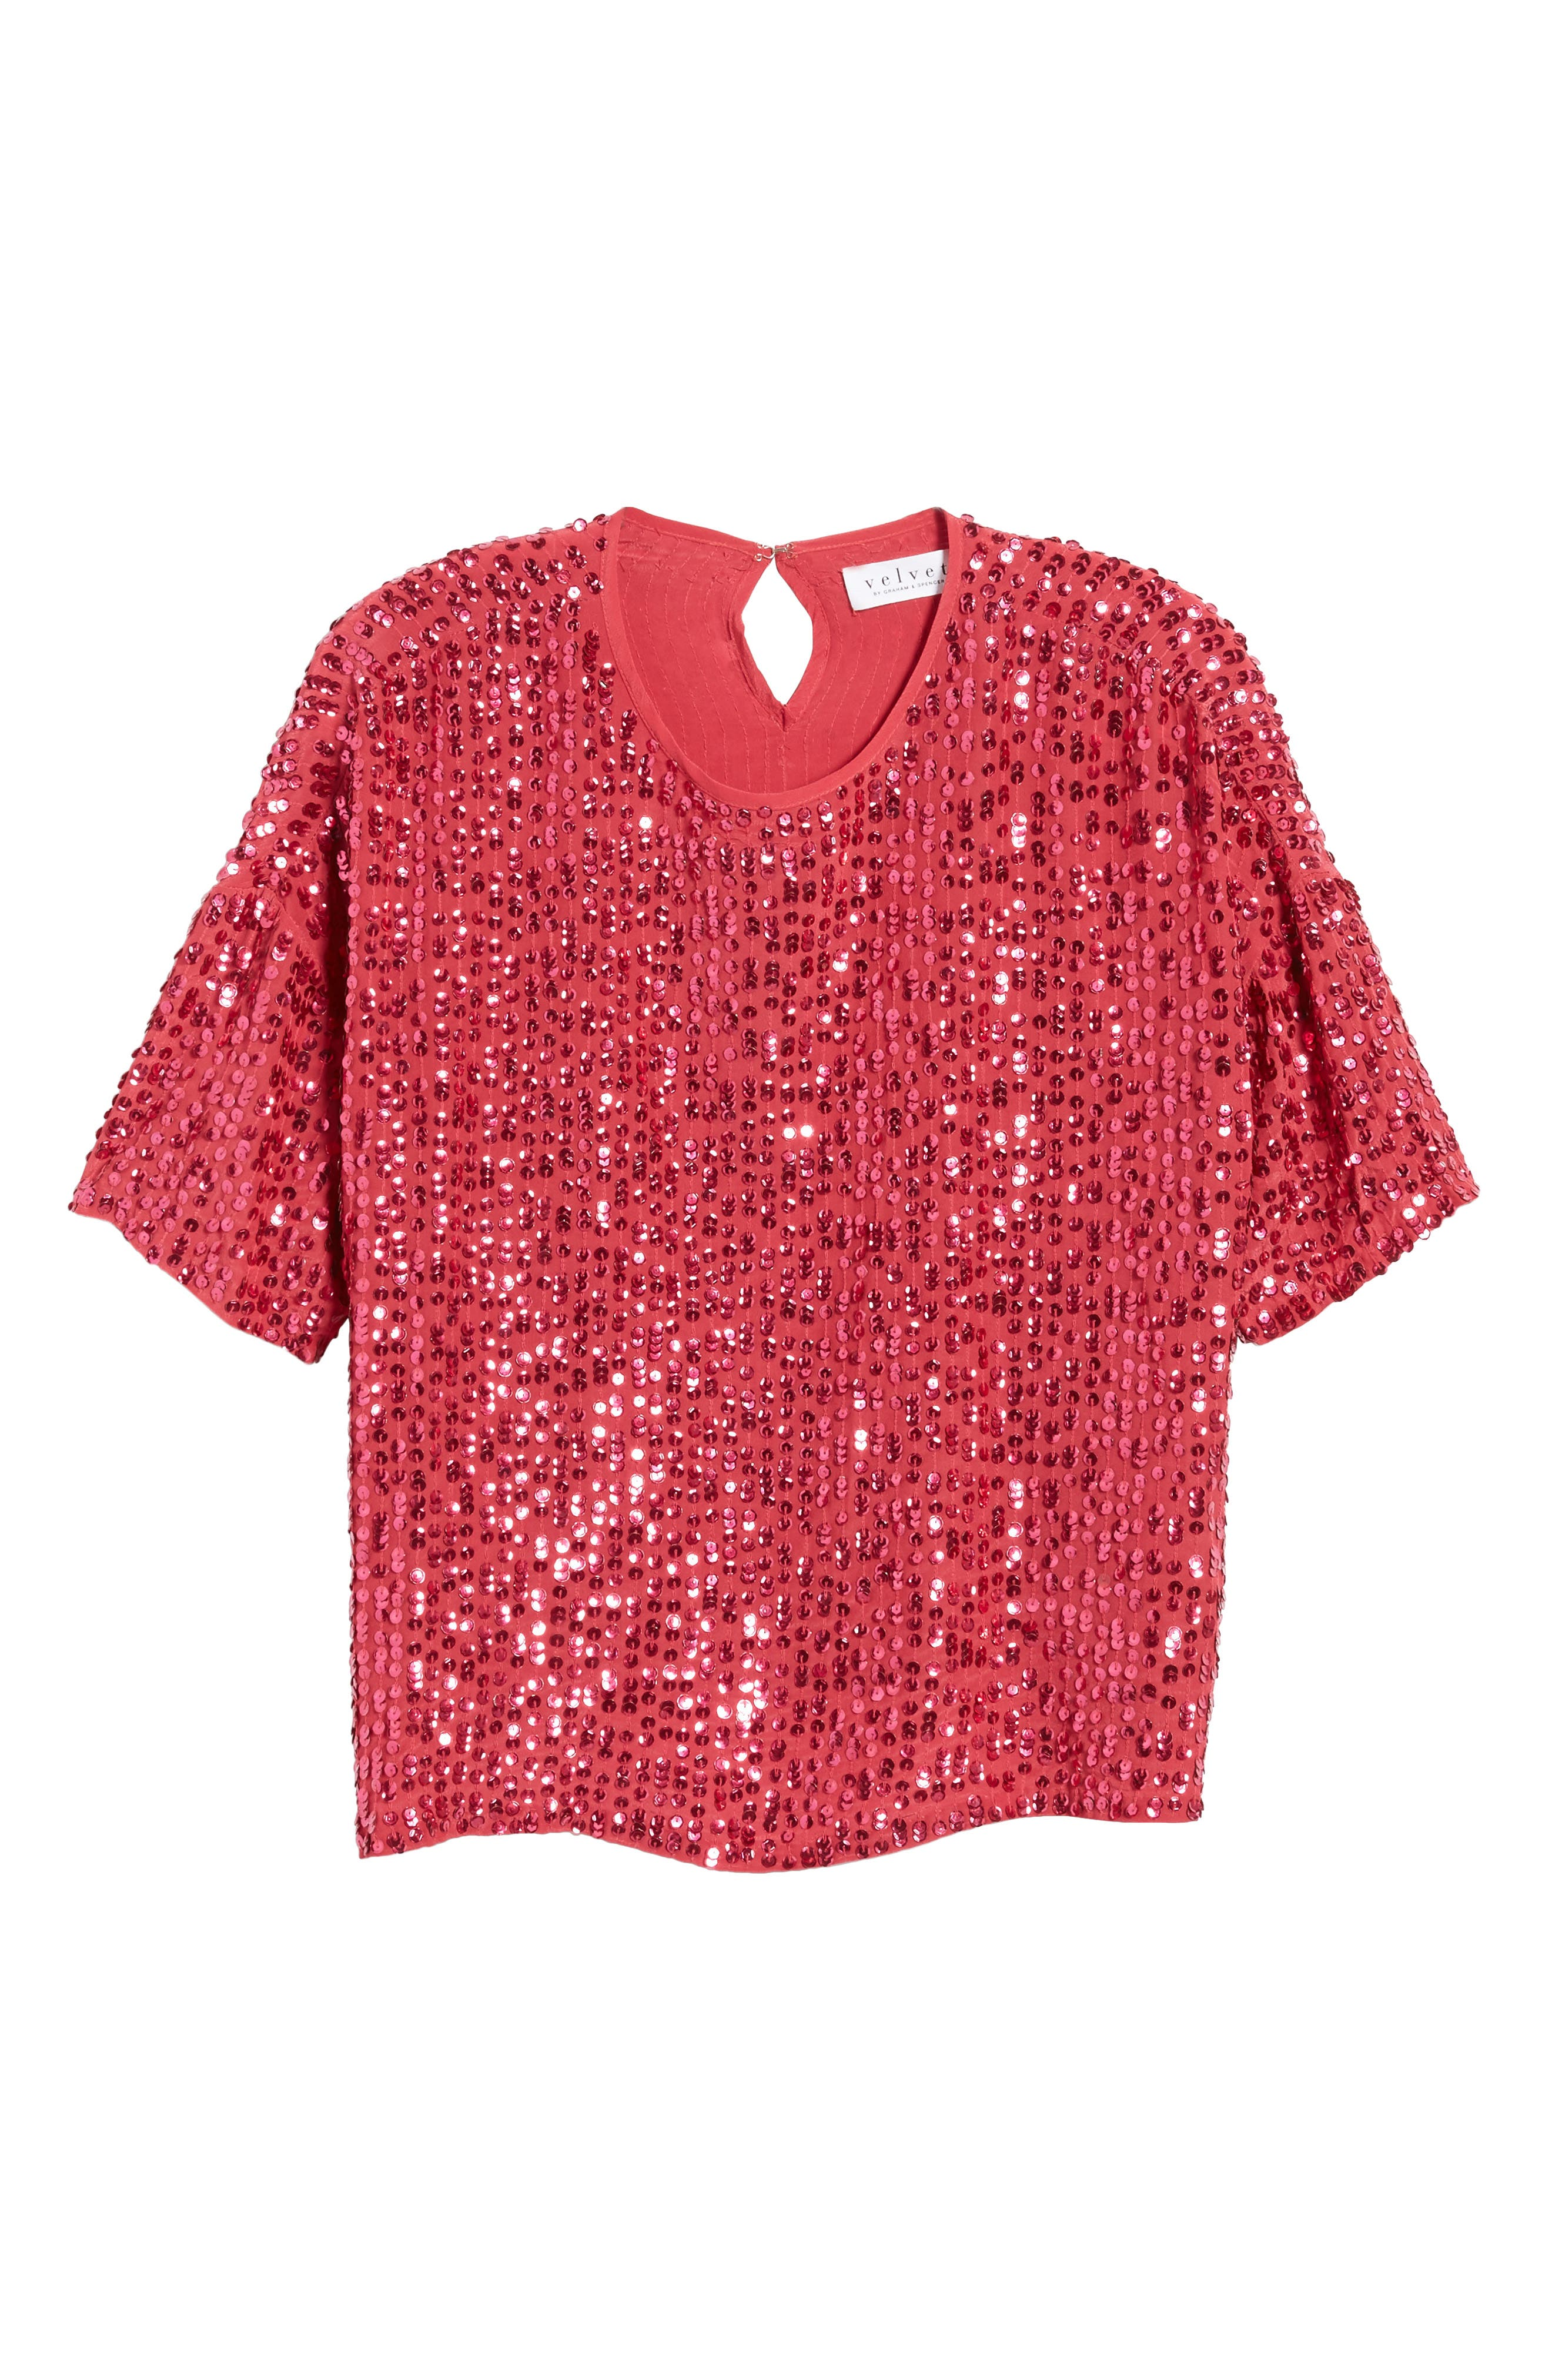 Short Sleeve Sequin Top,                             Alternate thumbnail 6, color,                             Hot Pink